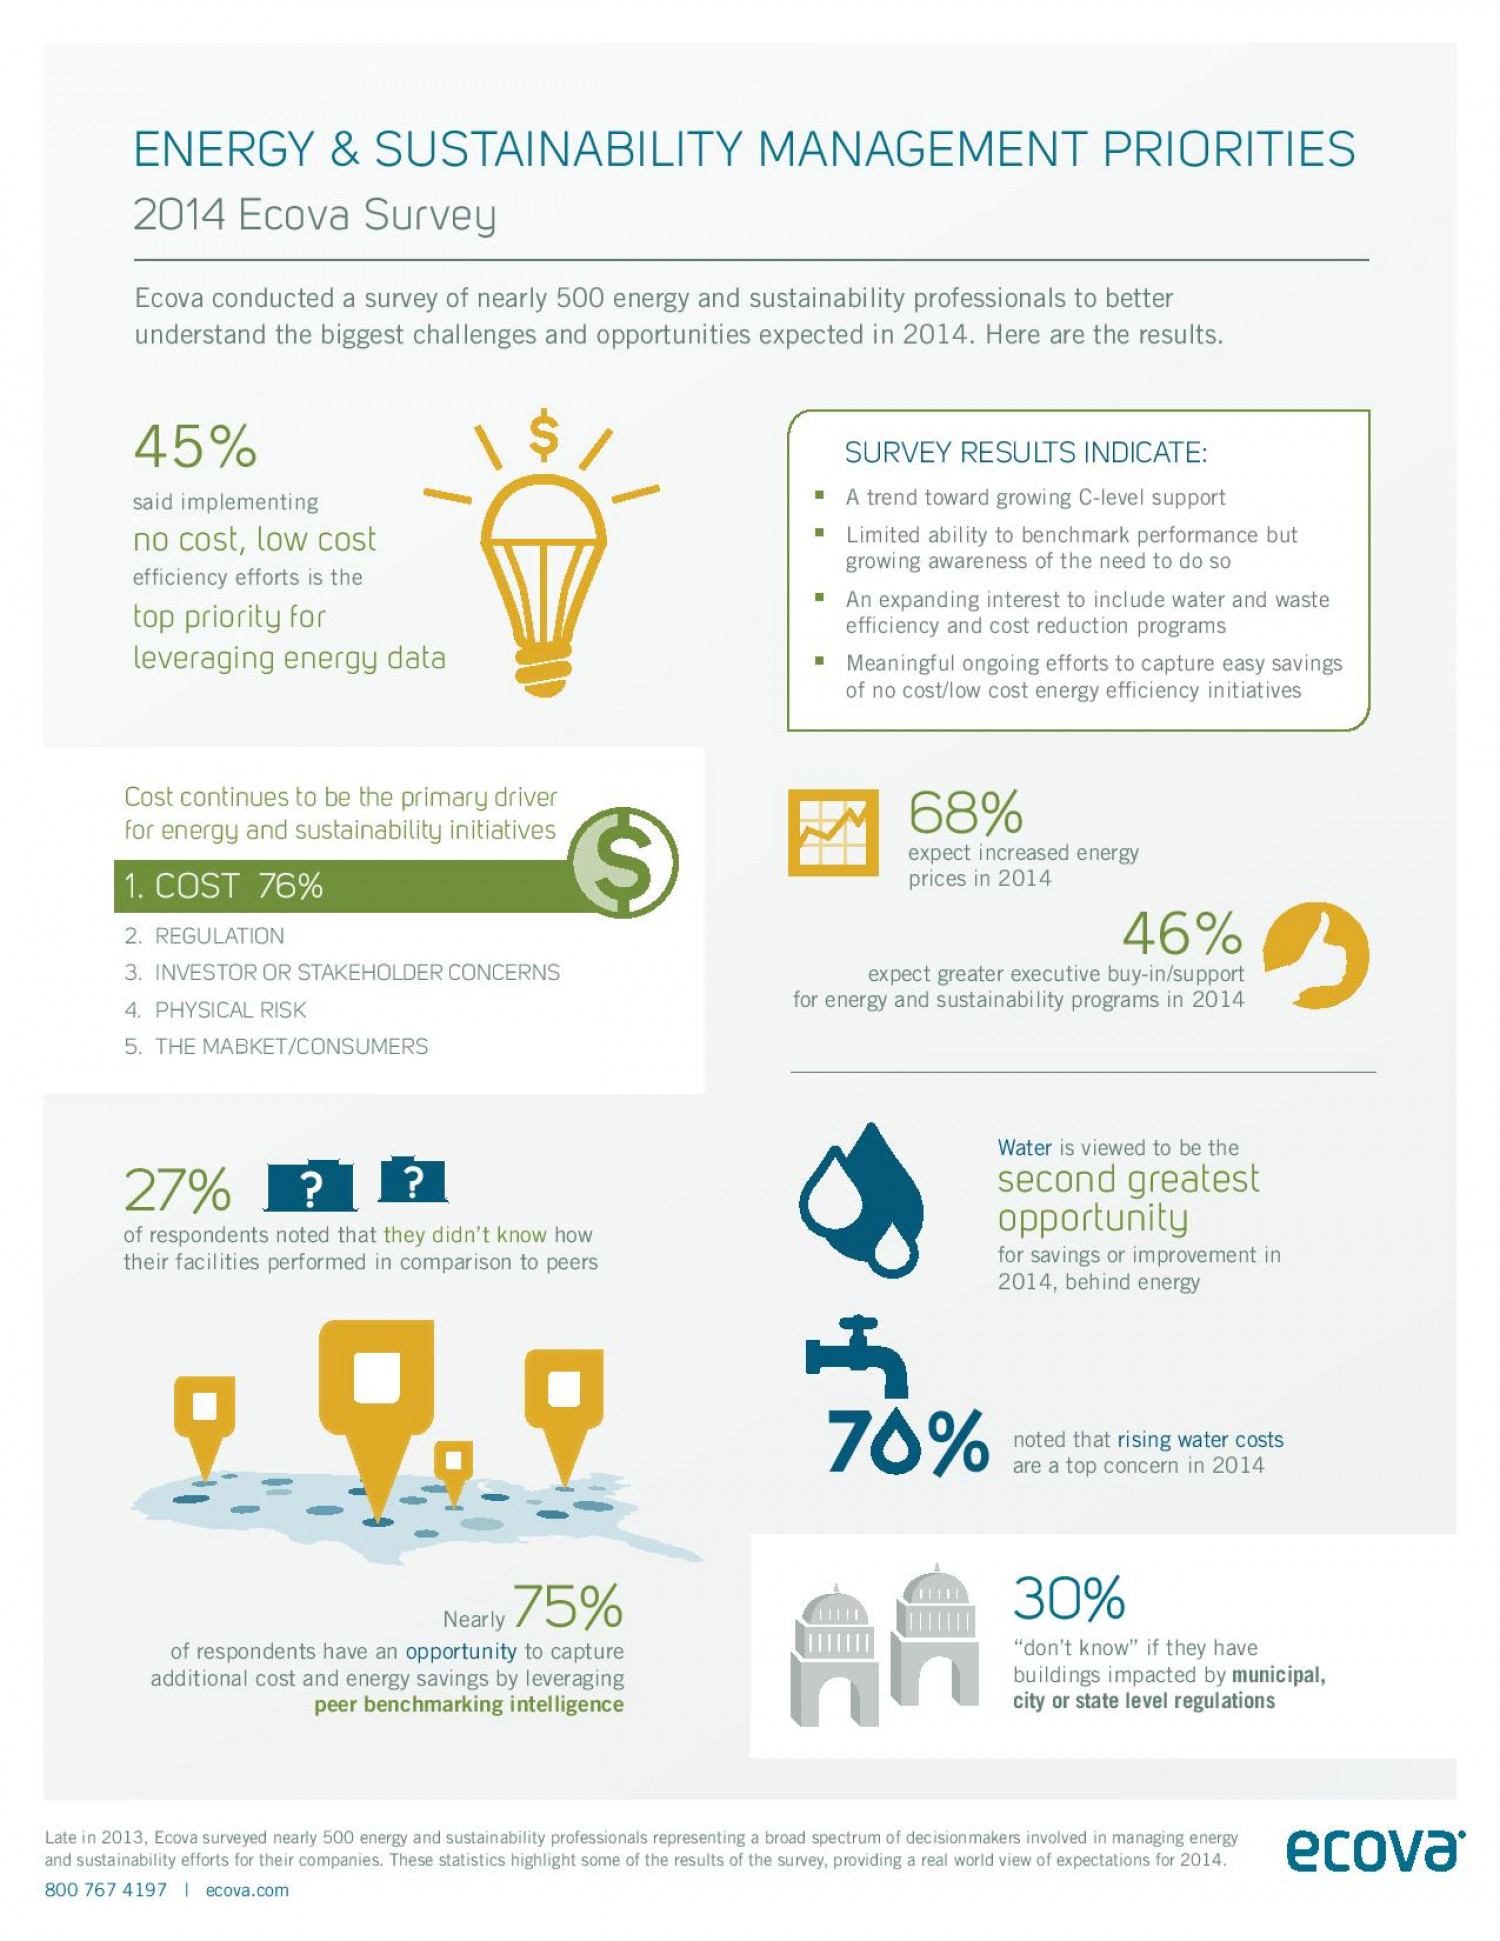 Energy & Sustainability Management Priorities Infographic